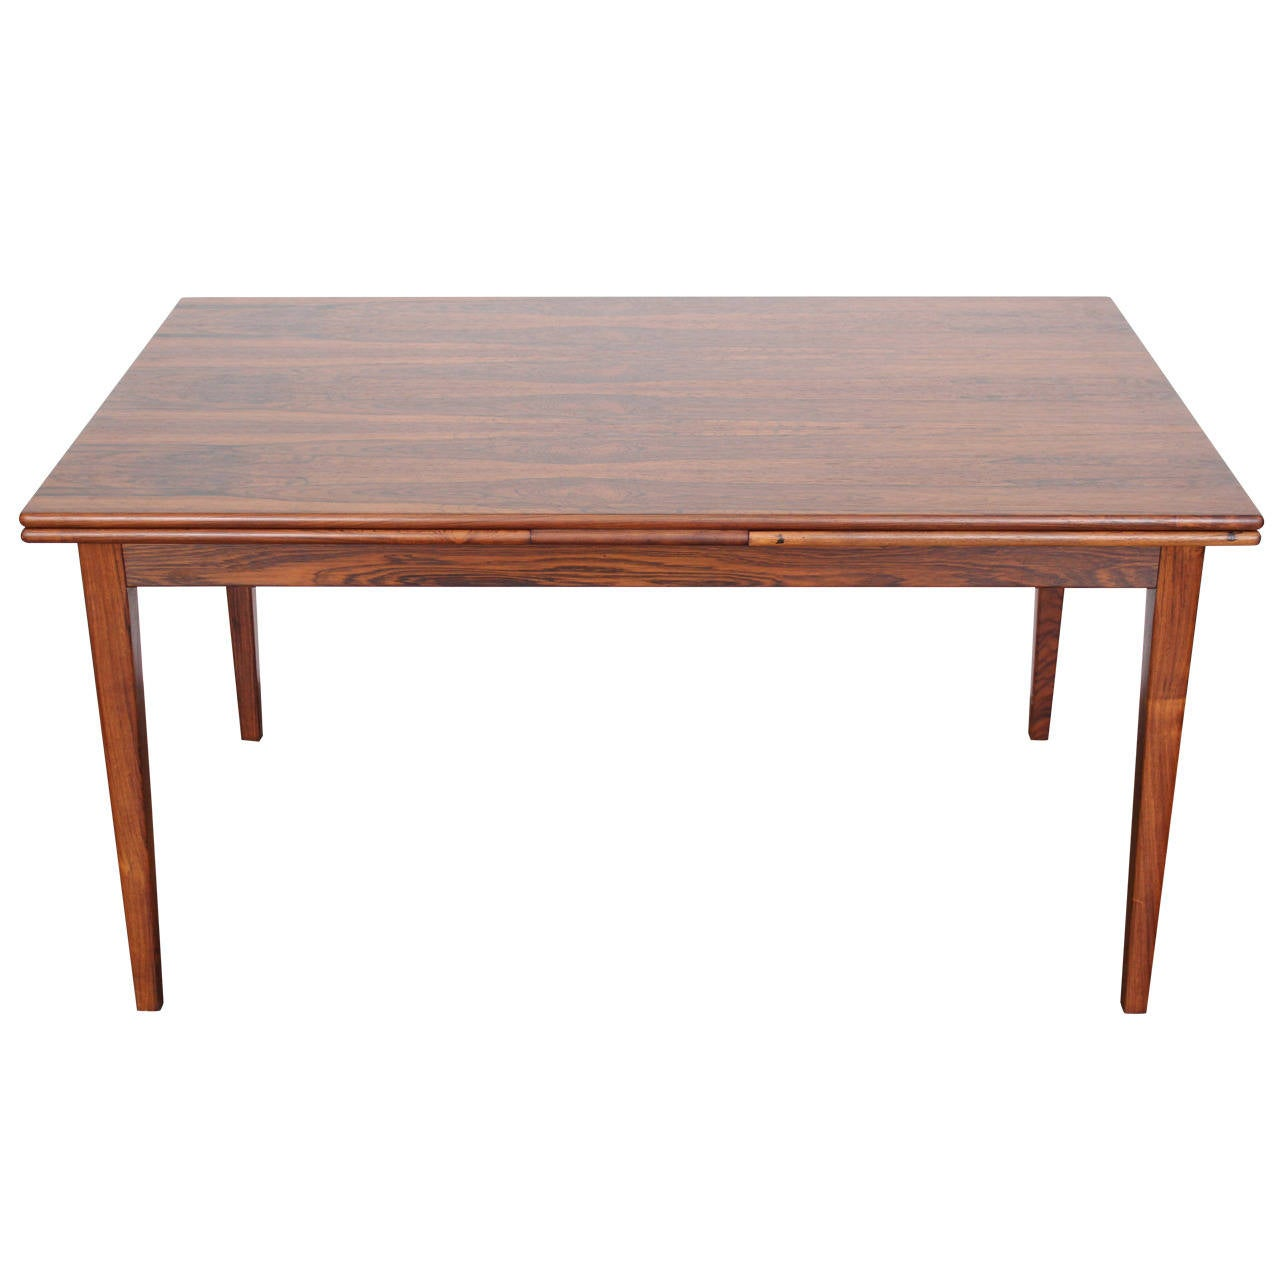 Danish midcentury rosewood expandable dining table at 1stdibs for Expandable dining table